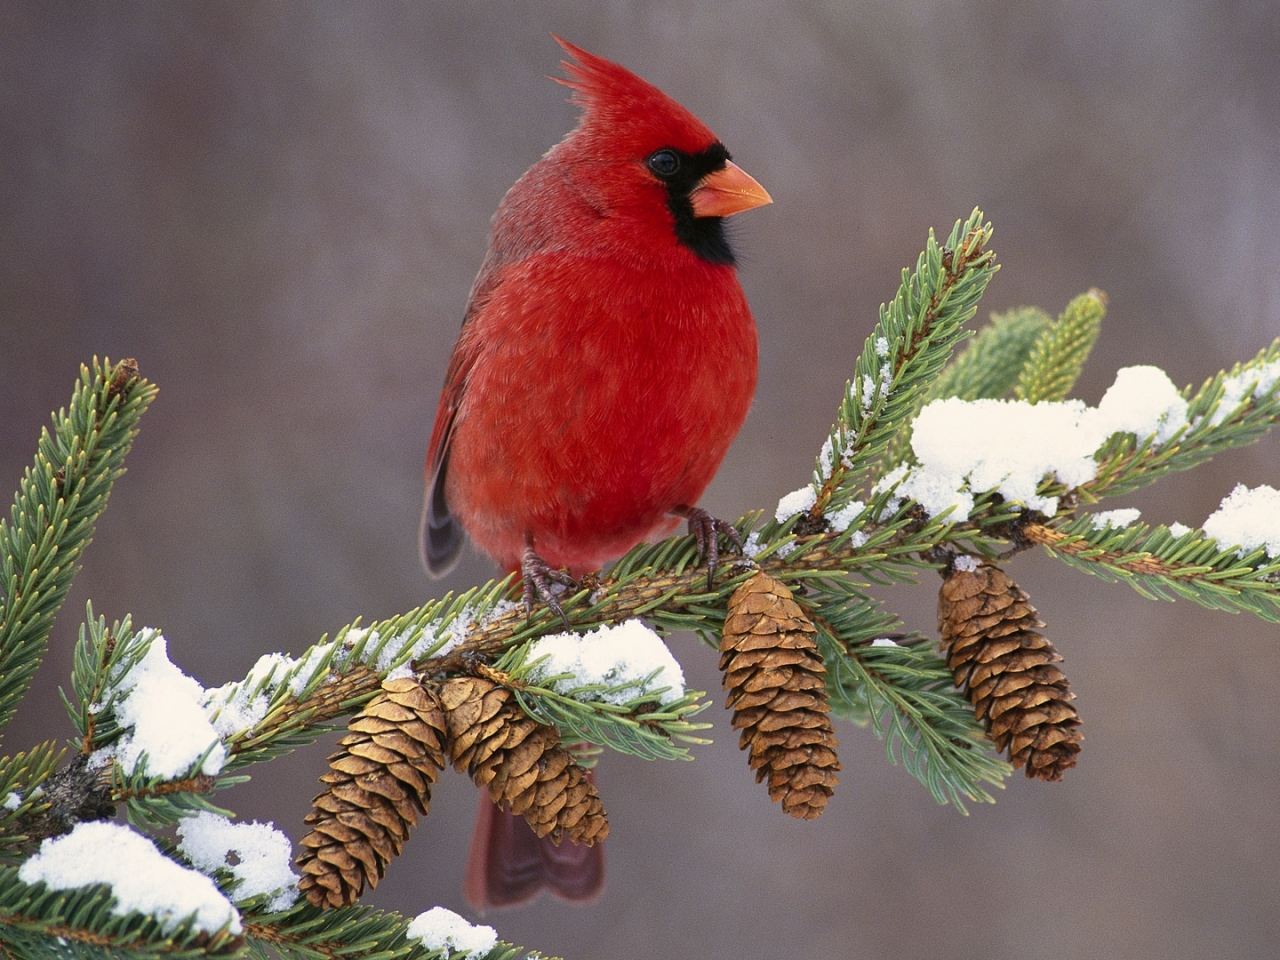 Cardinal Bird Color Wallpapers For PC Birds Cardinal Bird 1280x960